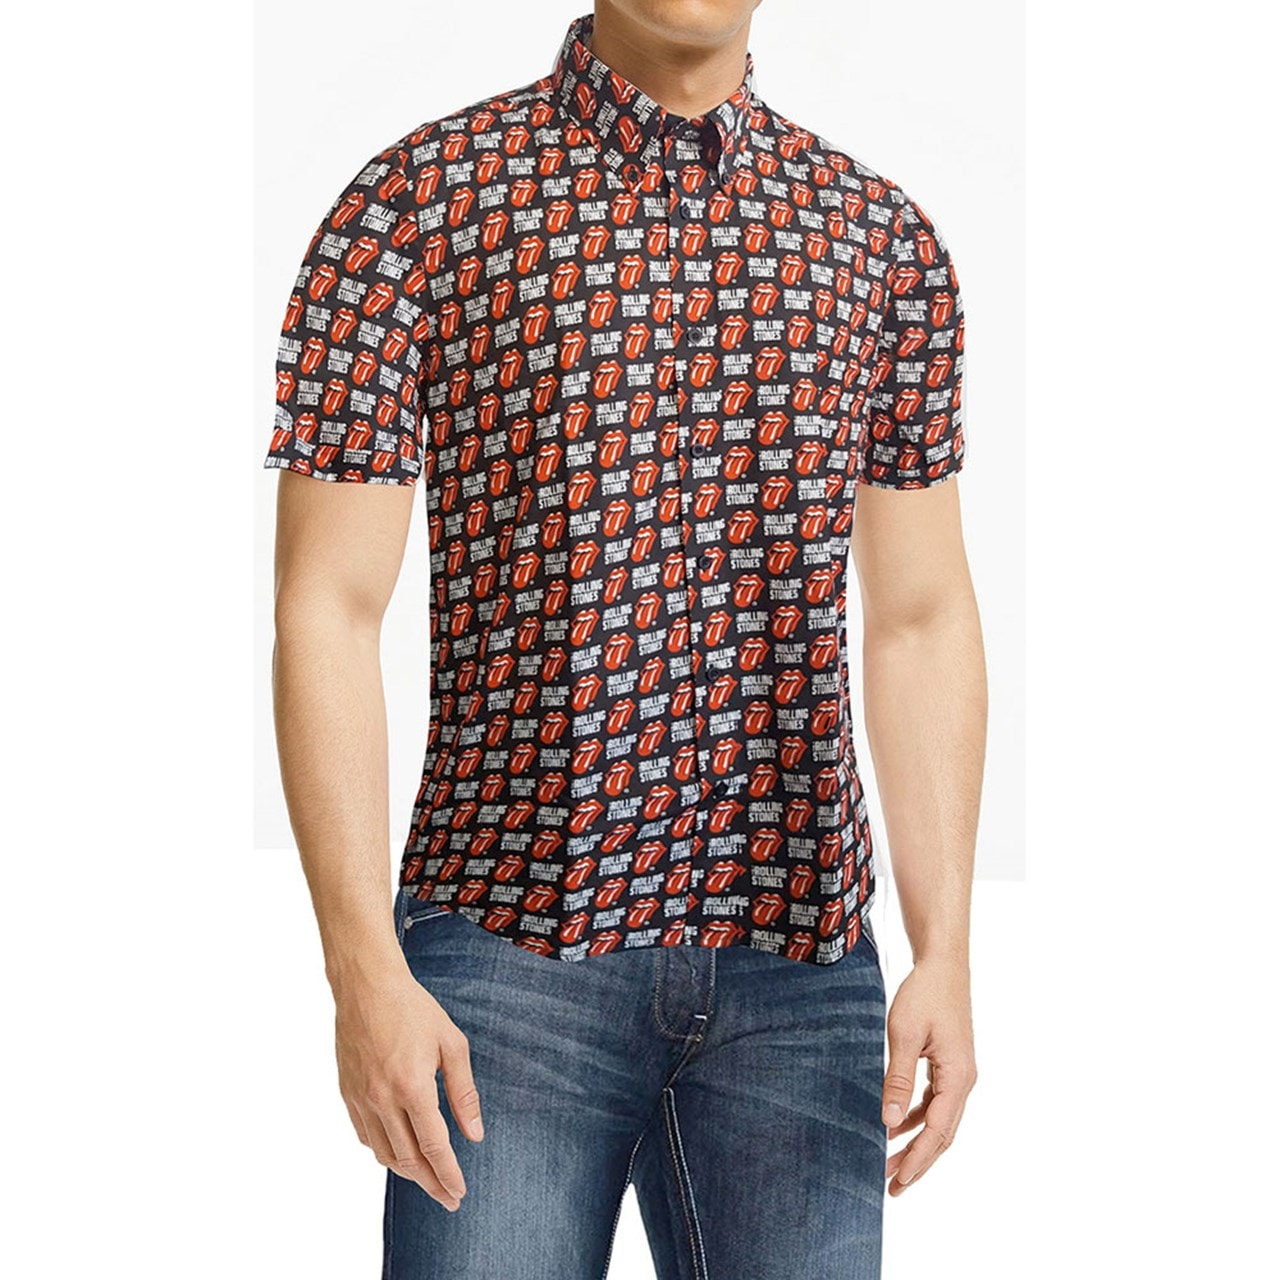 Rolling Stones: Tongue & Text Casual Shirt (Small) - 1